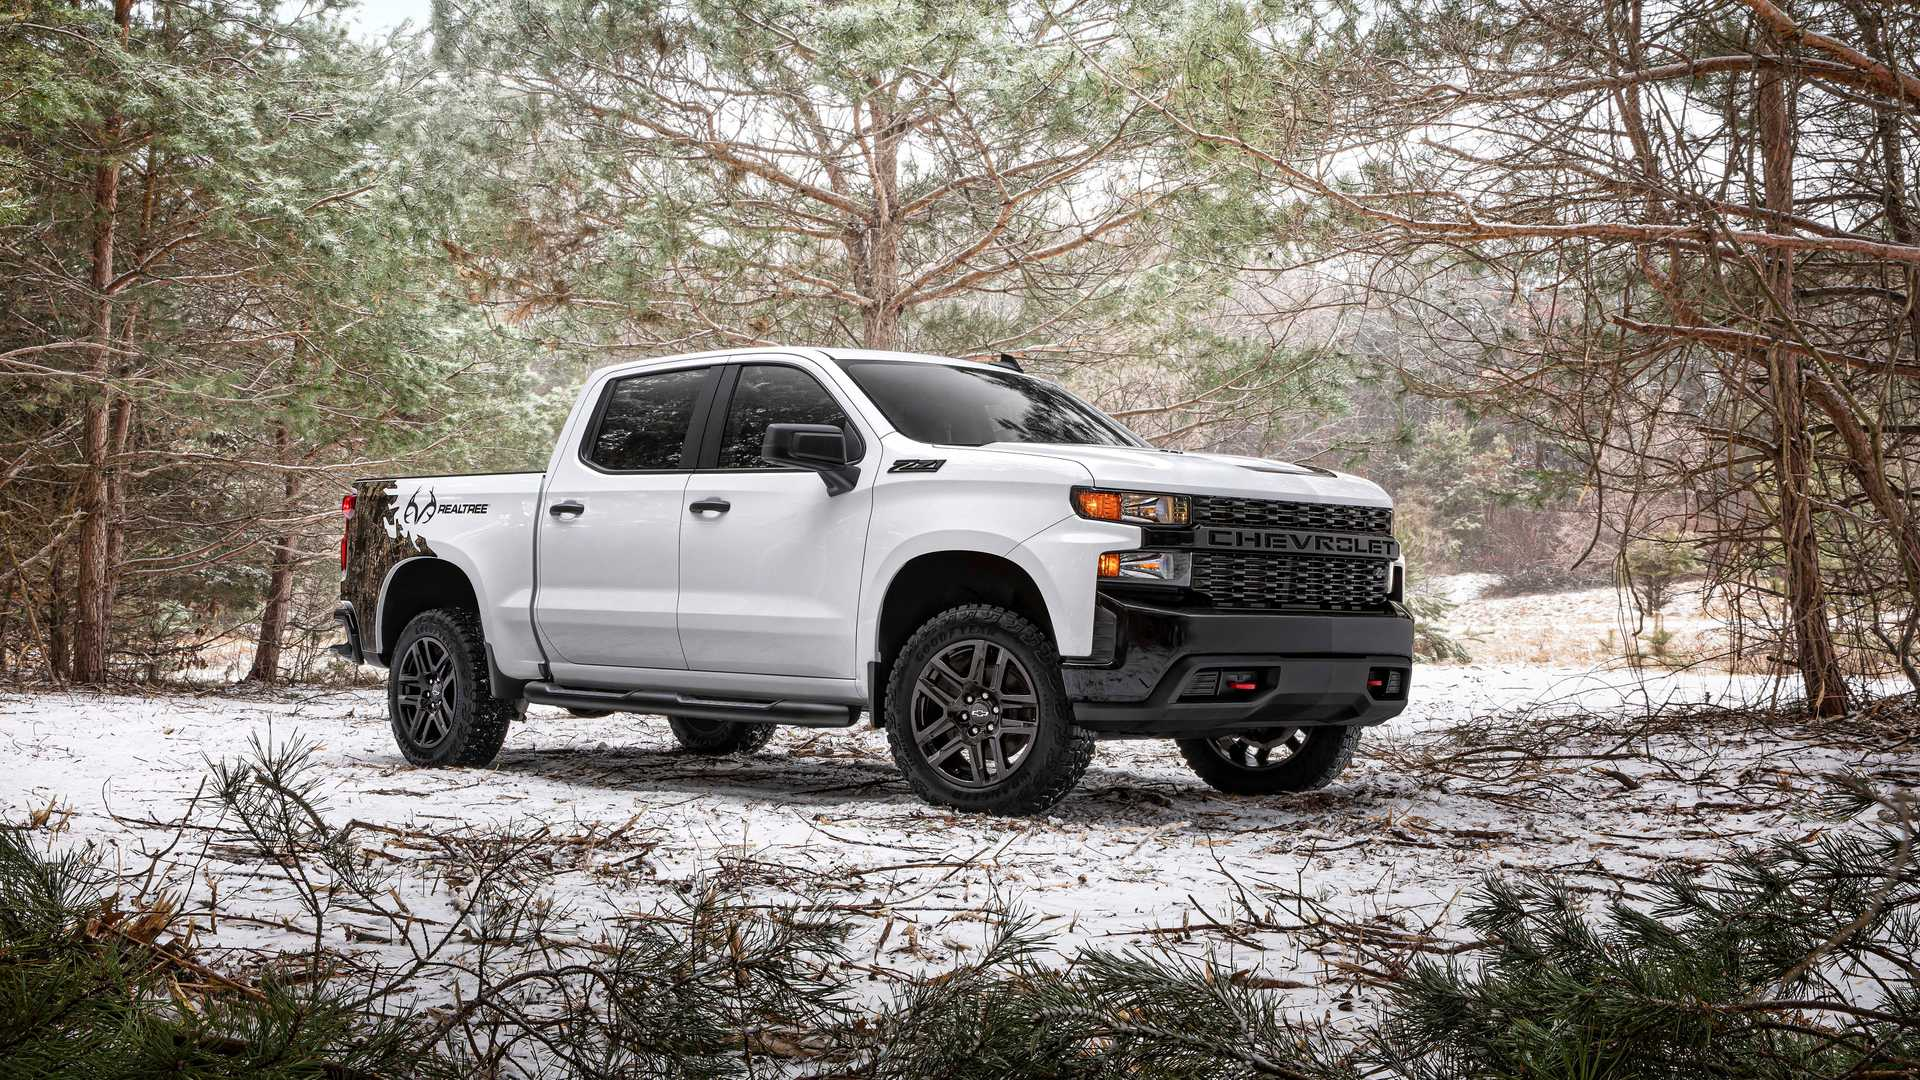 Two U.S.-based companies, Chevrolet and Realtree, have joined efforts to produce a limited series of the Silverado pickup truck called Realtree Edition. The tuner vehicles will hit authorized Chevy showrooms in summer, and the prices are pending.